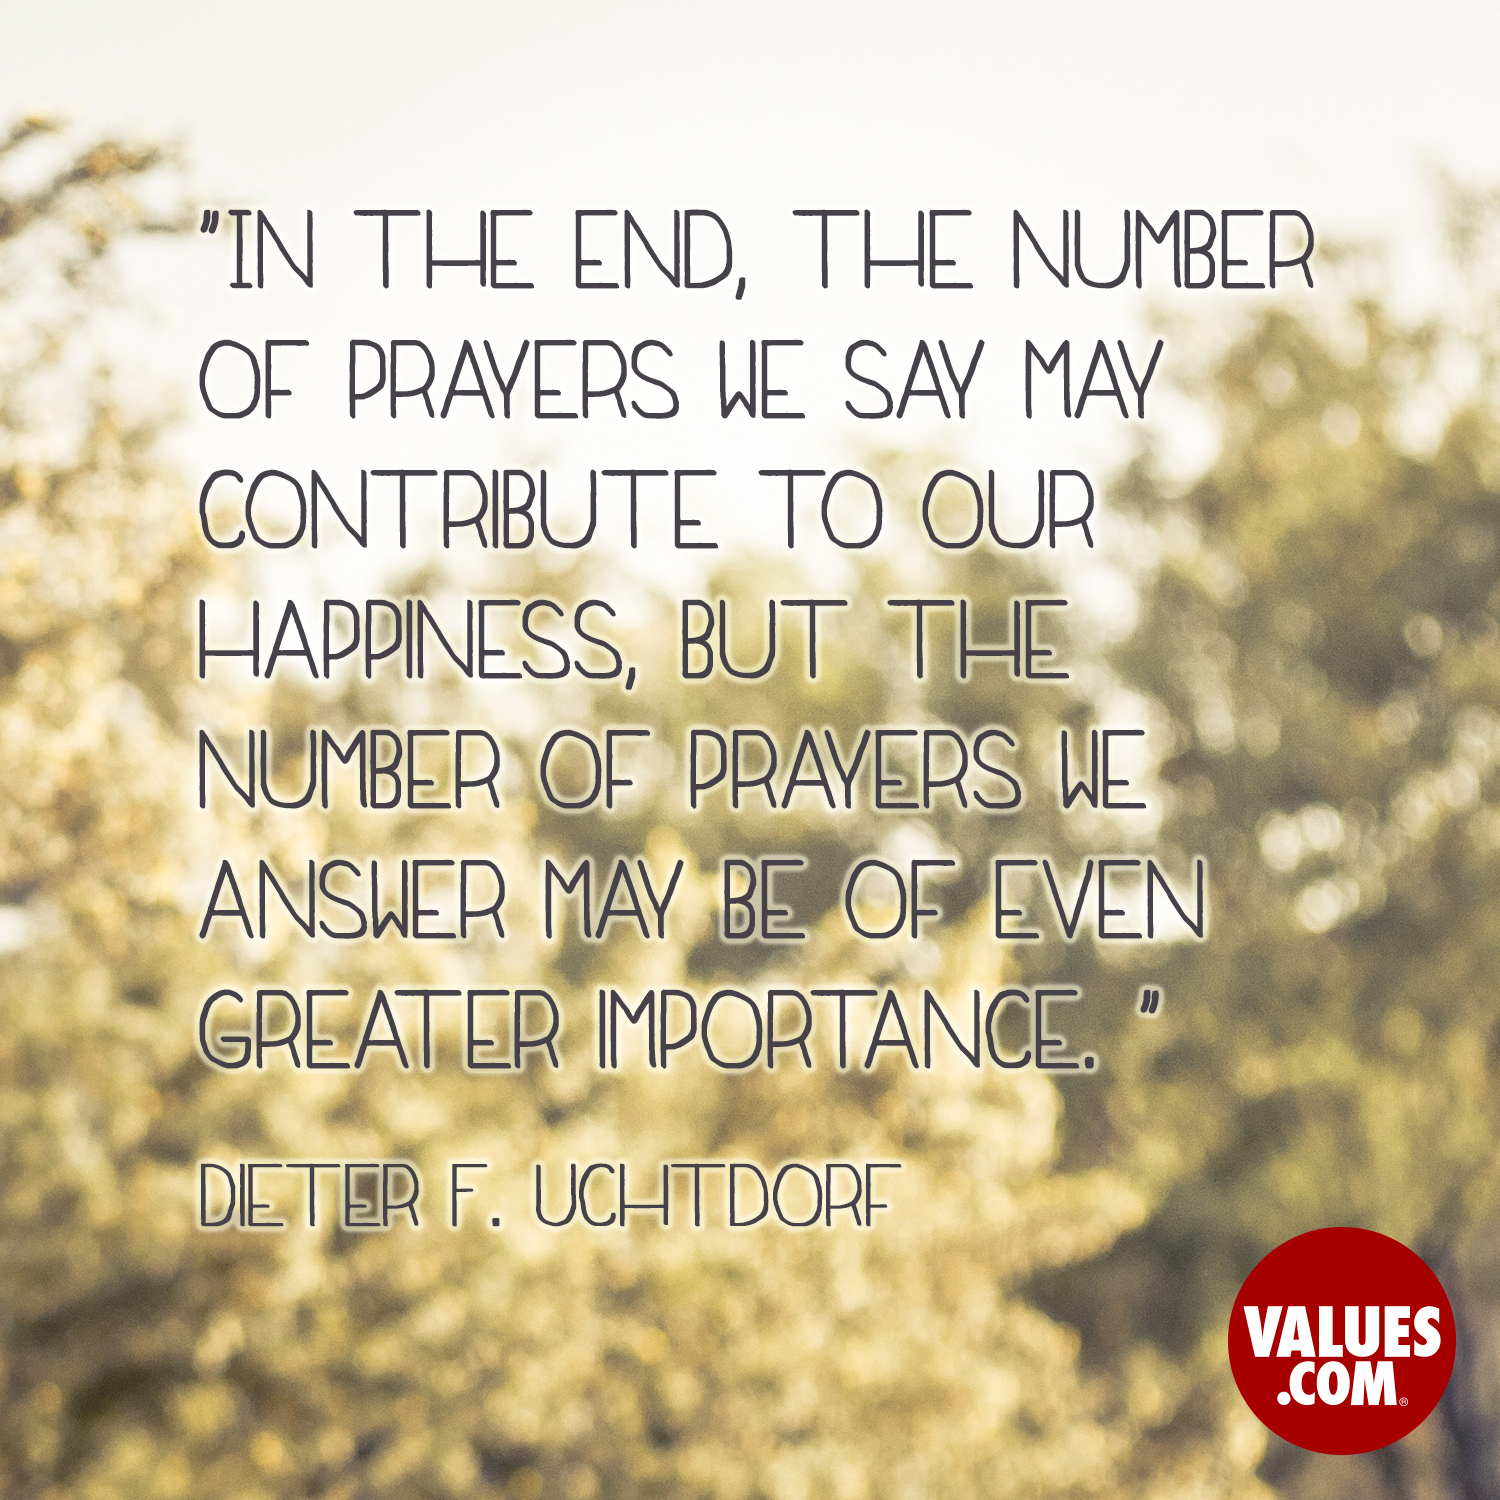 In the end, the number of prayers we say may contribute to our happiness, but the number of prayers we answer may be of even greater importance.  —Dieter F. Uchtdorf